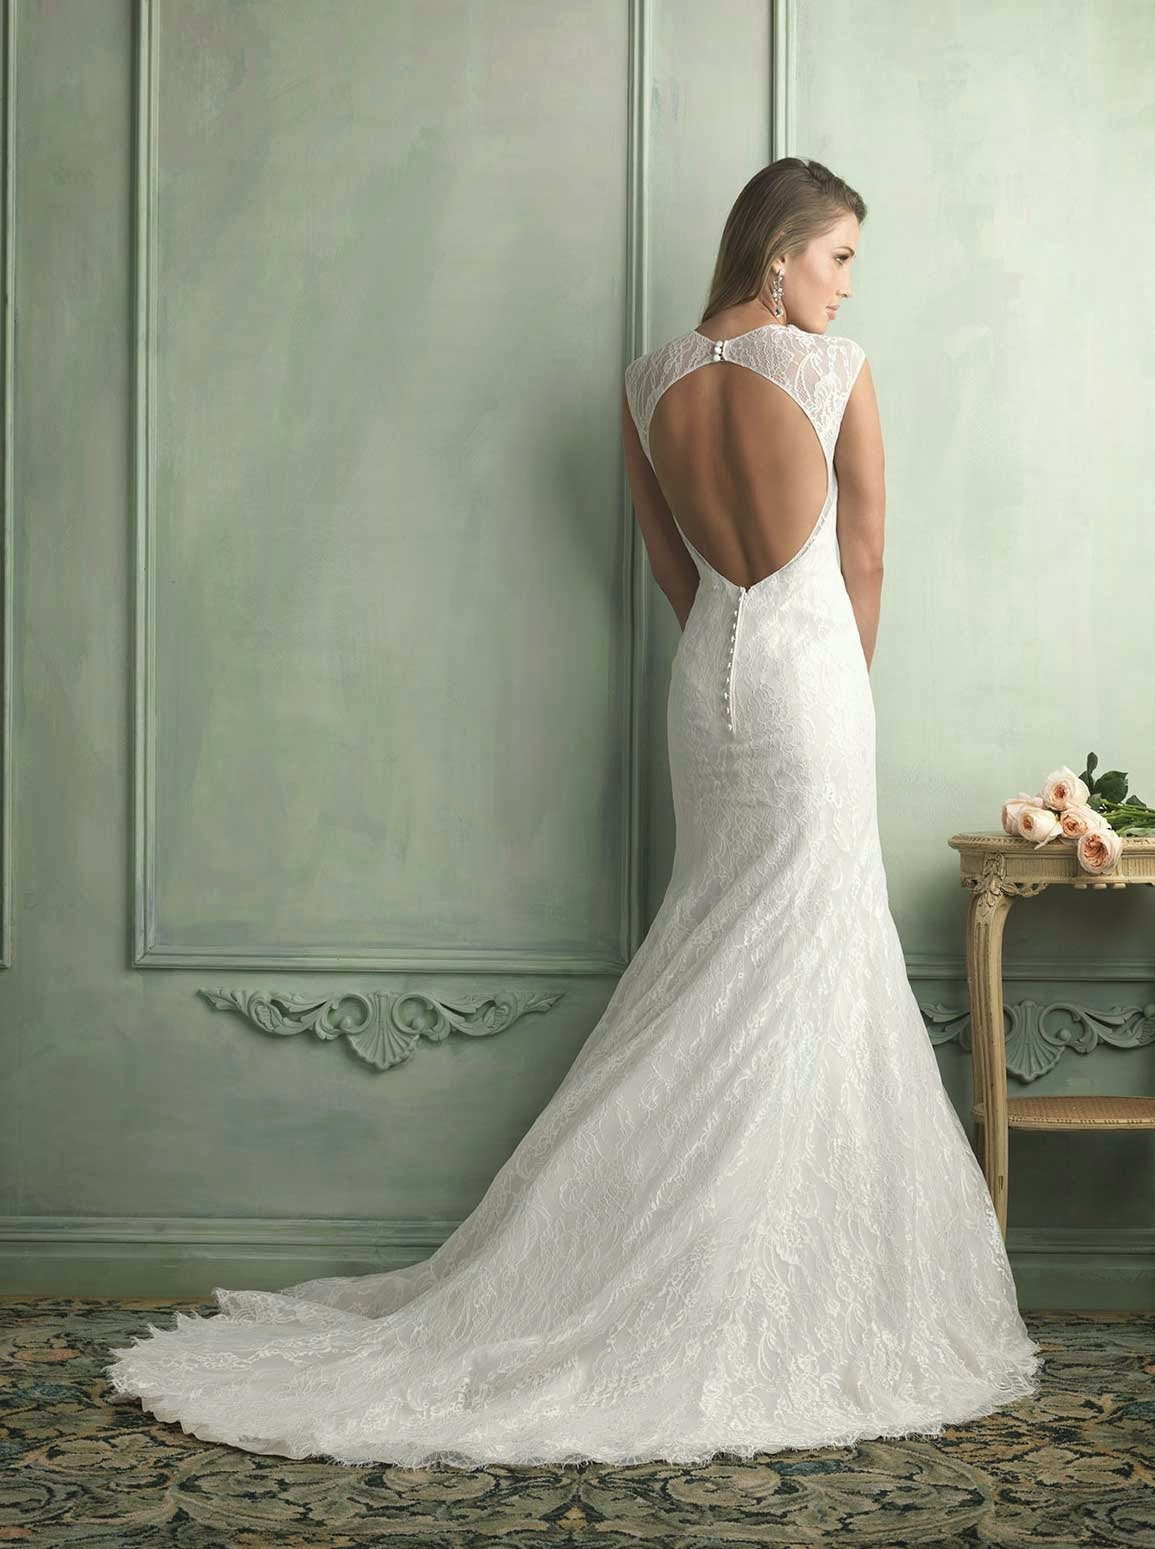 Backless white rose wedding dresses vera wang ideas for Wedding dresses with roses on them